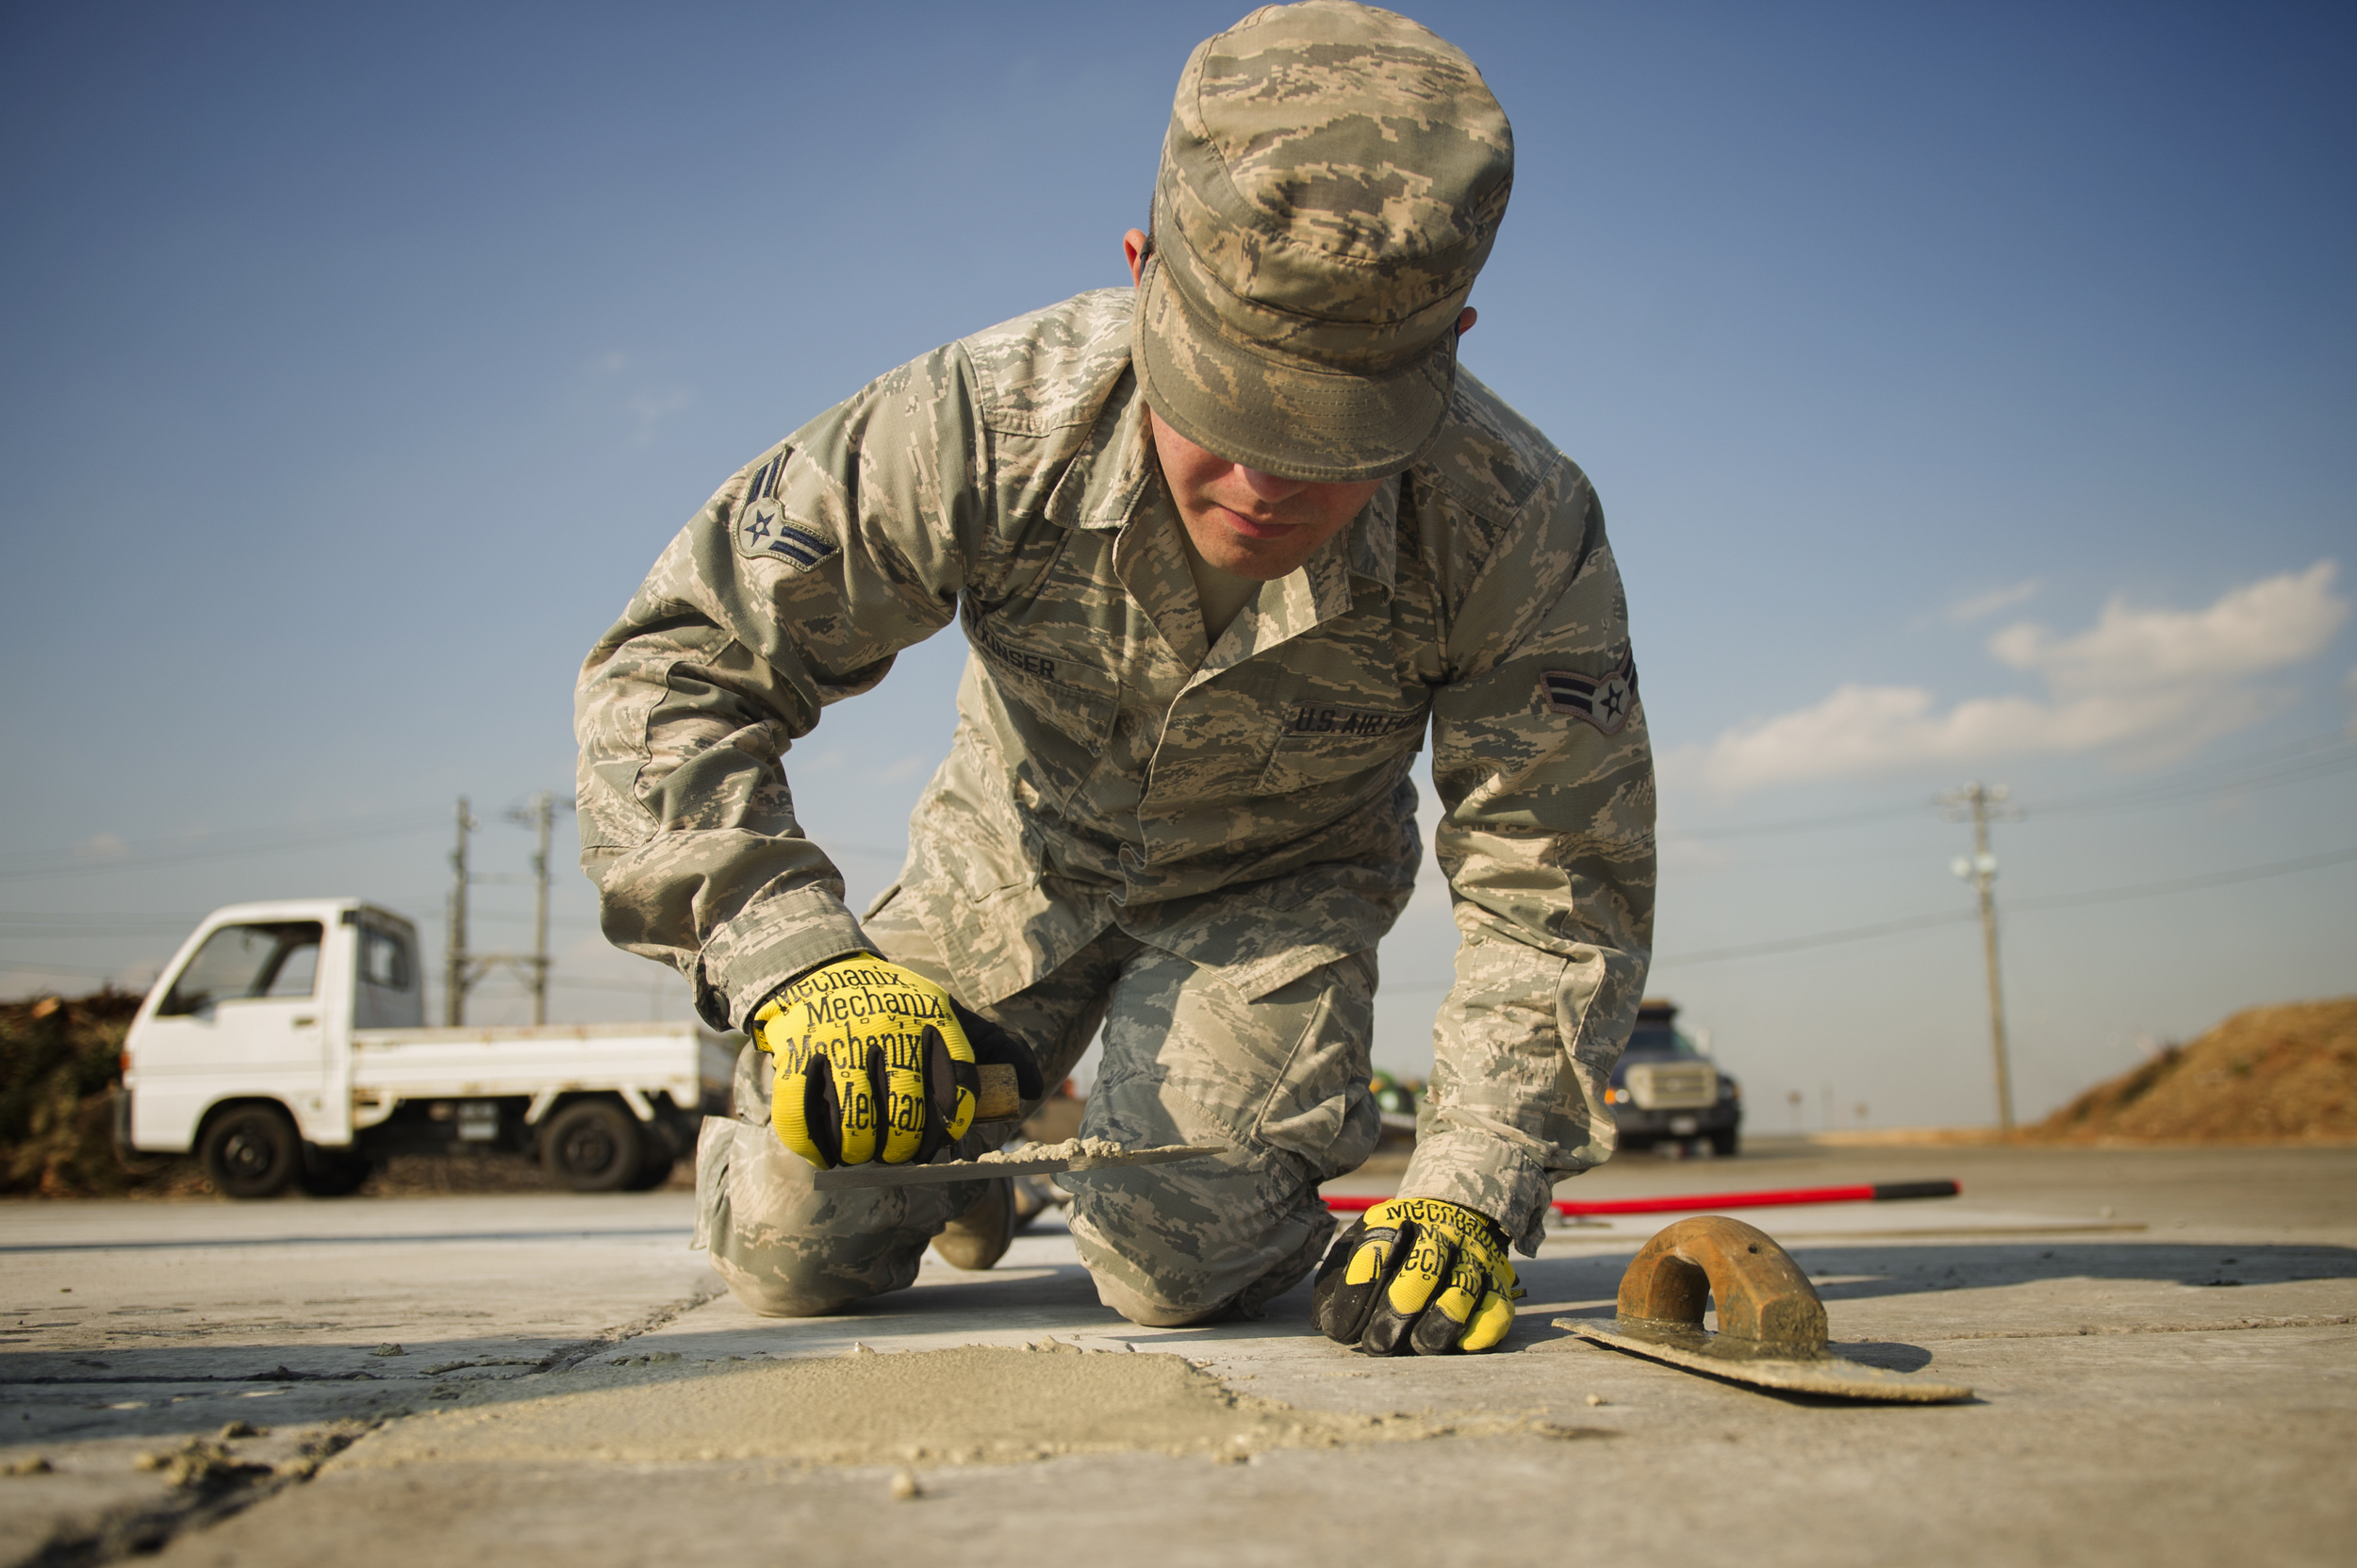 Airman 1st Class Brendan Kinser, 374th Civil Engineer Squadron pavements and equipment apprentice, performs a spall repair on a section of Yokota Air Base, Japan, Jan. 13, 2016. Aptly named 'Dirt Boys', 374 CES pavement and equipment Airmen perform spall repairs as part of their preventative maintenance practices to ensure Yoktoa's airfield is free of cracks and tears. (U.S. Air Force photo by Airman 1st Class Delano Scott/Released)